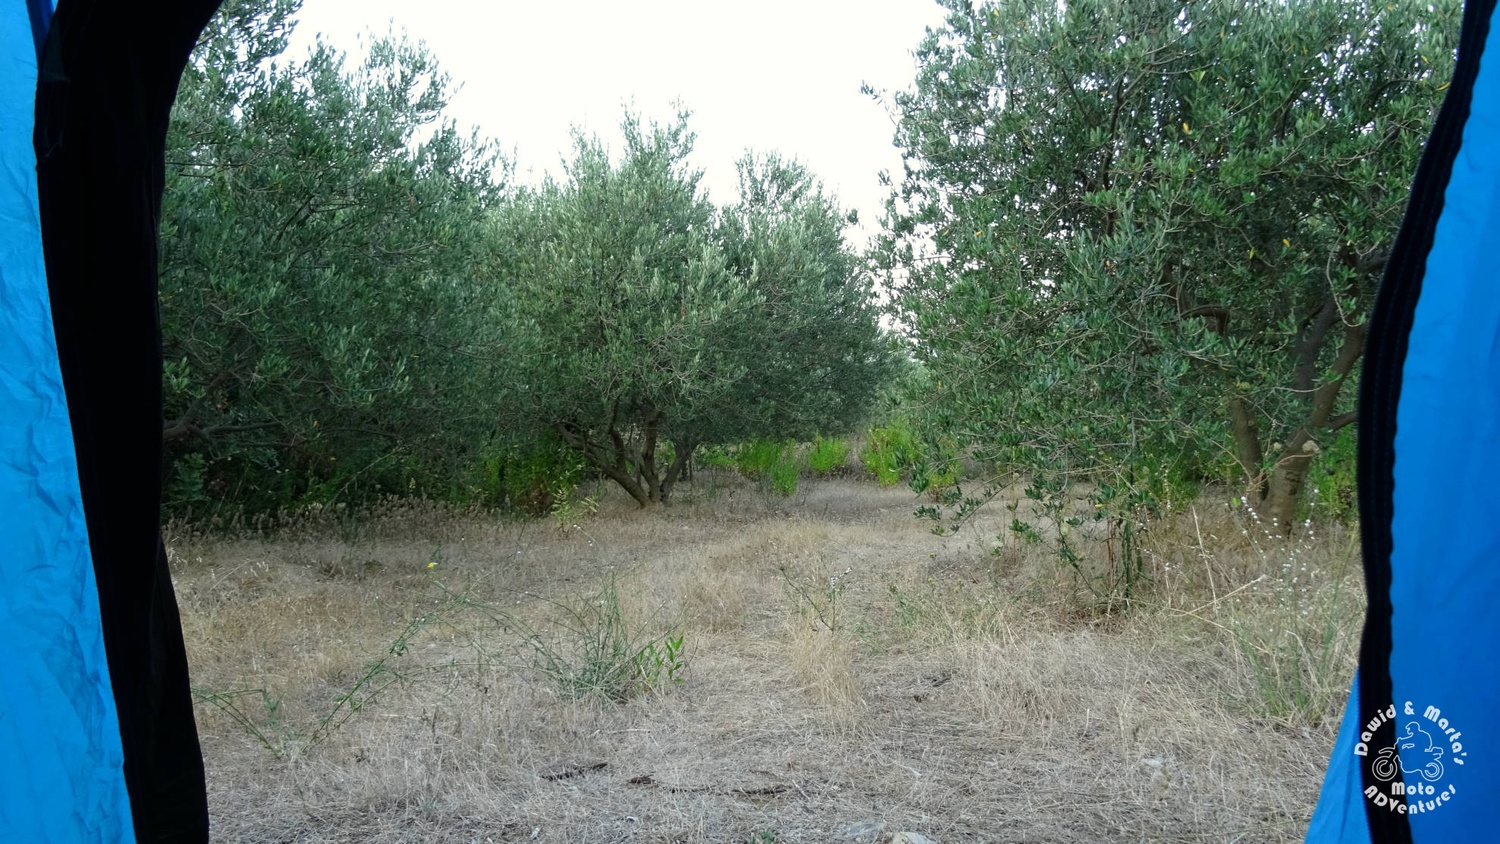 The olive grove at camping near Croatian Raba spot